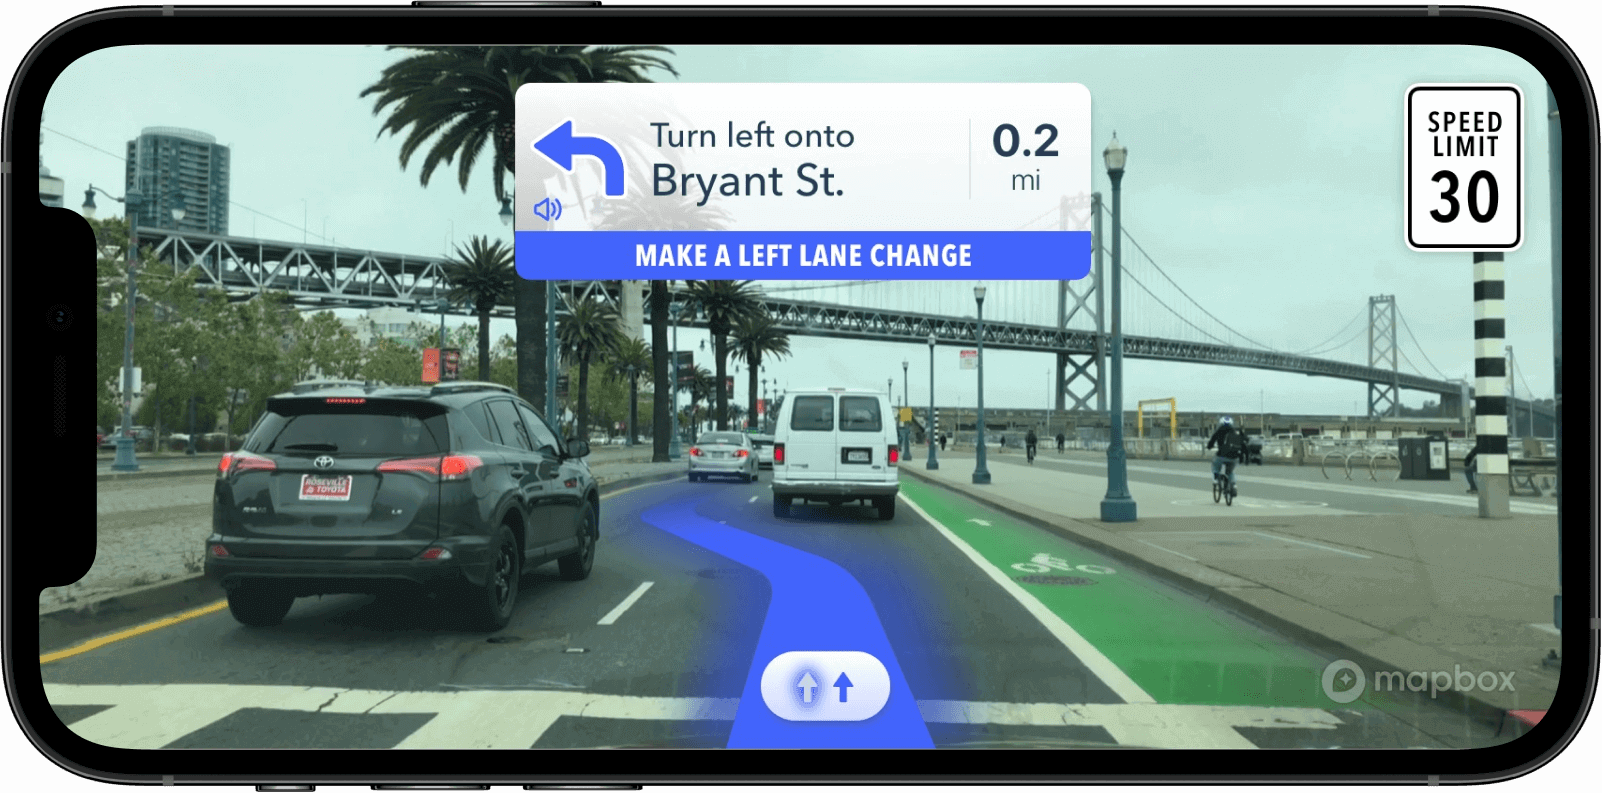 Mapbox vision builds AR navigation right in a phone.